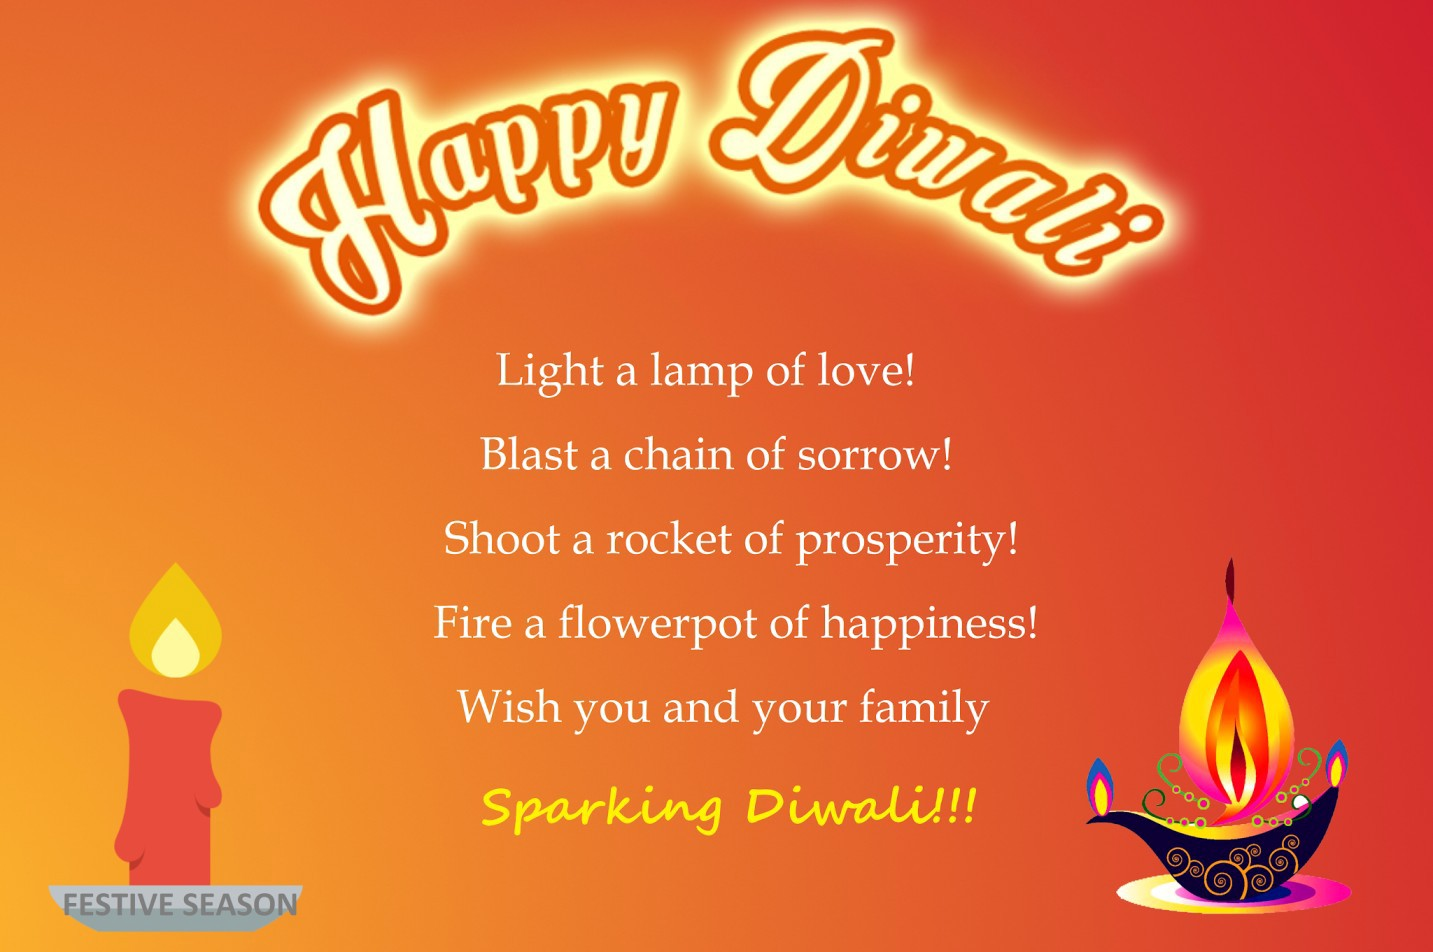 Happy Diwali 2020 60 Best Wishes Quotes Messages Images By Kapil Bisht Medium